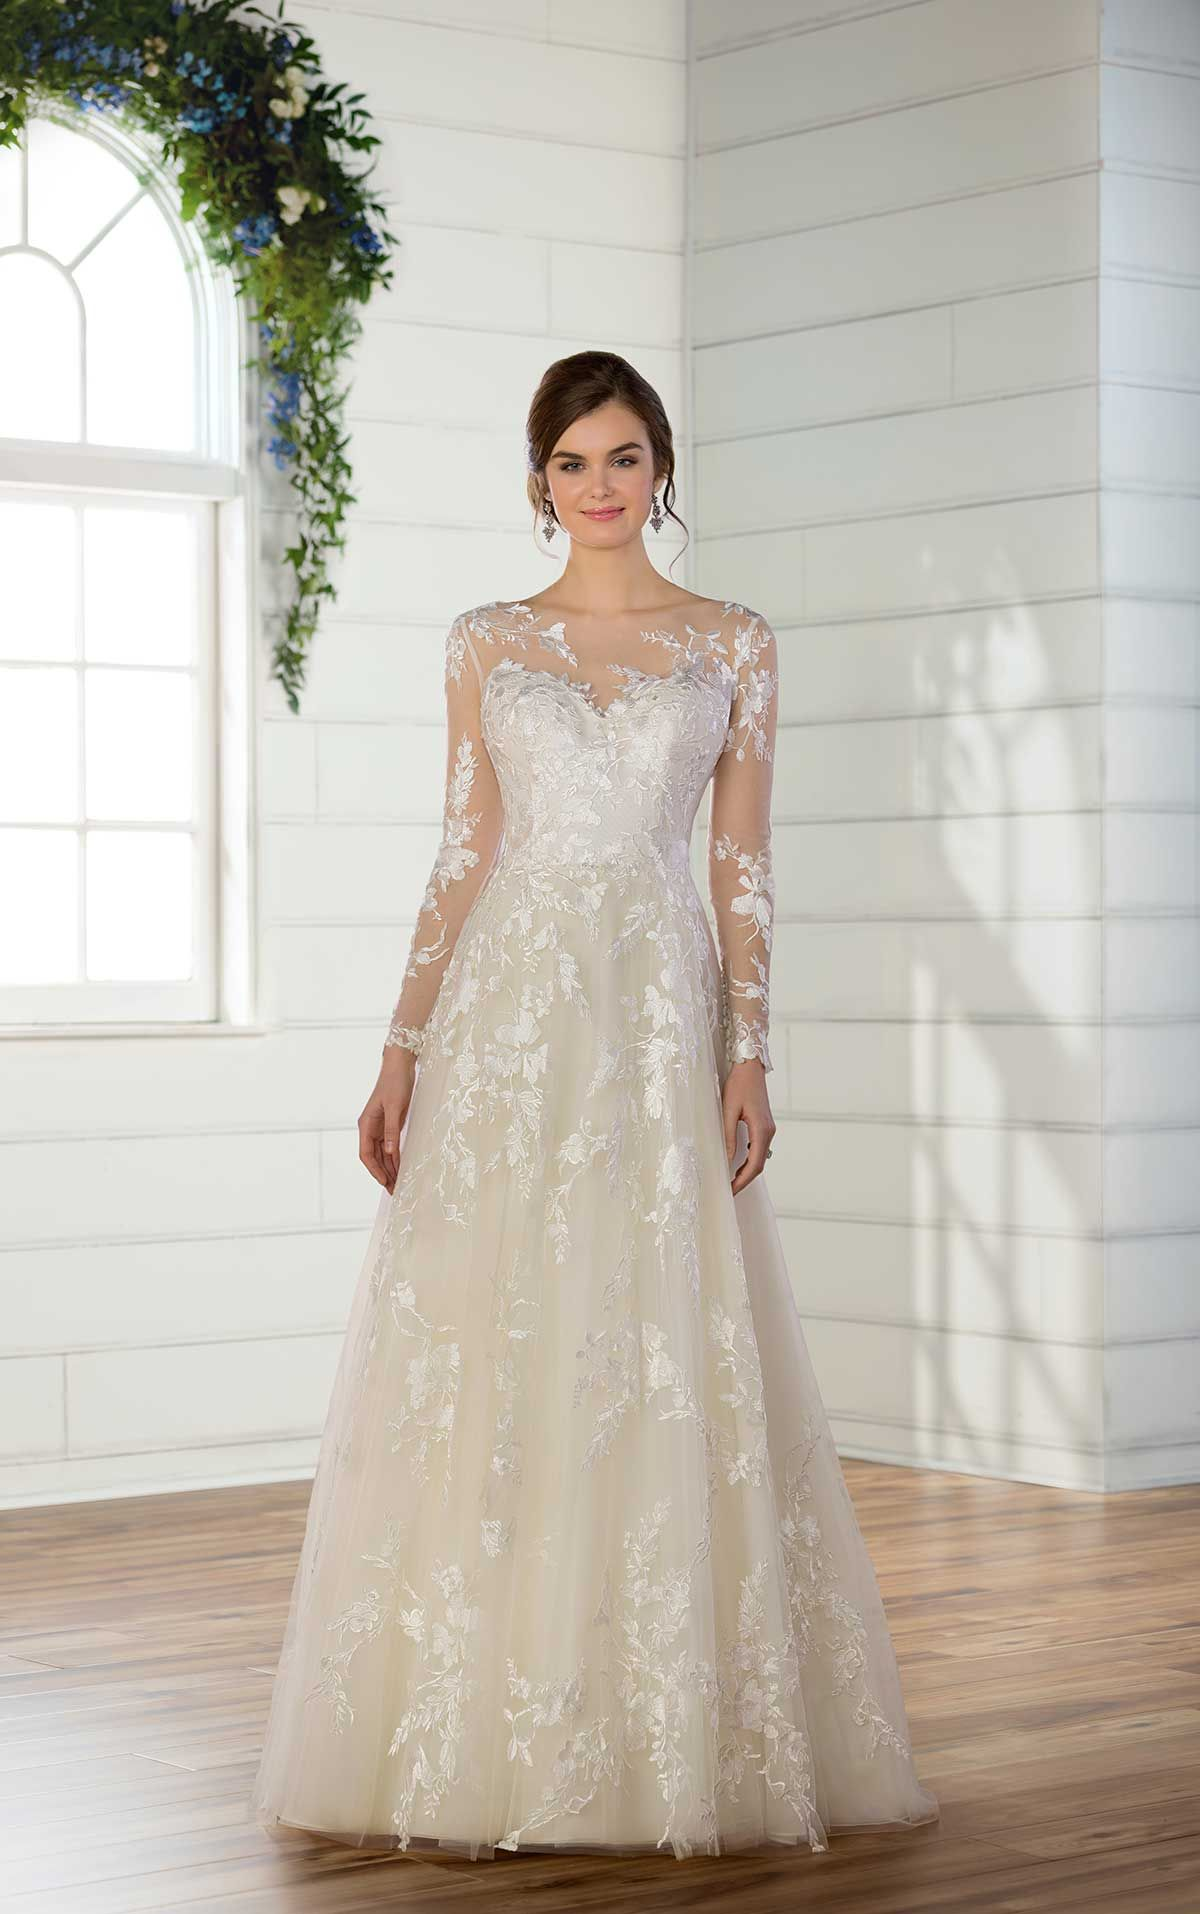 Directional Yet Demure Clothing For The Cool Modern Woman: Mermaid Wedding Dress With Rich Beadwork In 2020